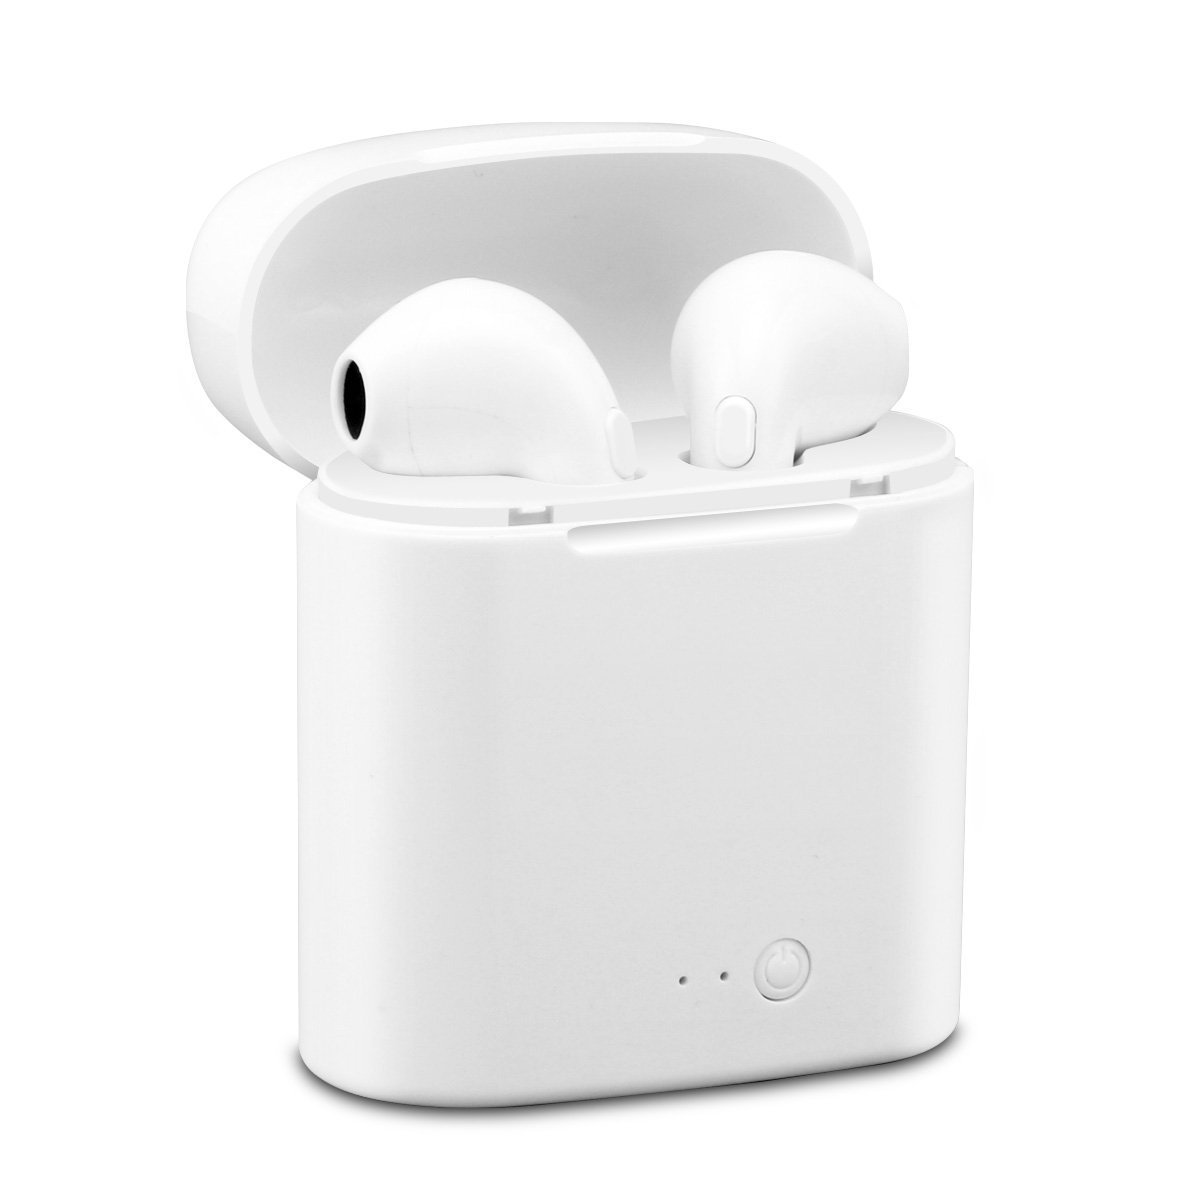 Auriculares inalámbricos Amuoc, auriculares Bluetooth estéreo, auriculares inalámbricos deportivos para Apple AirPods iPhone X/8/7/7 Plus/6/6S Plus Android, ...